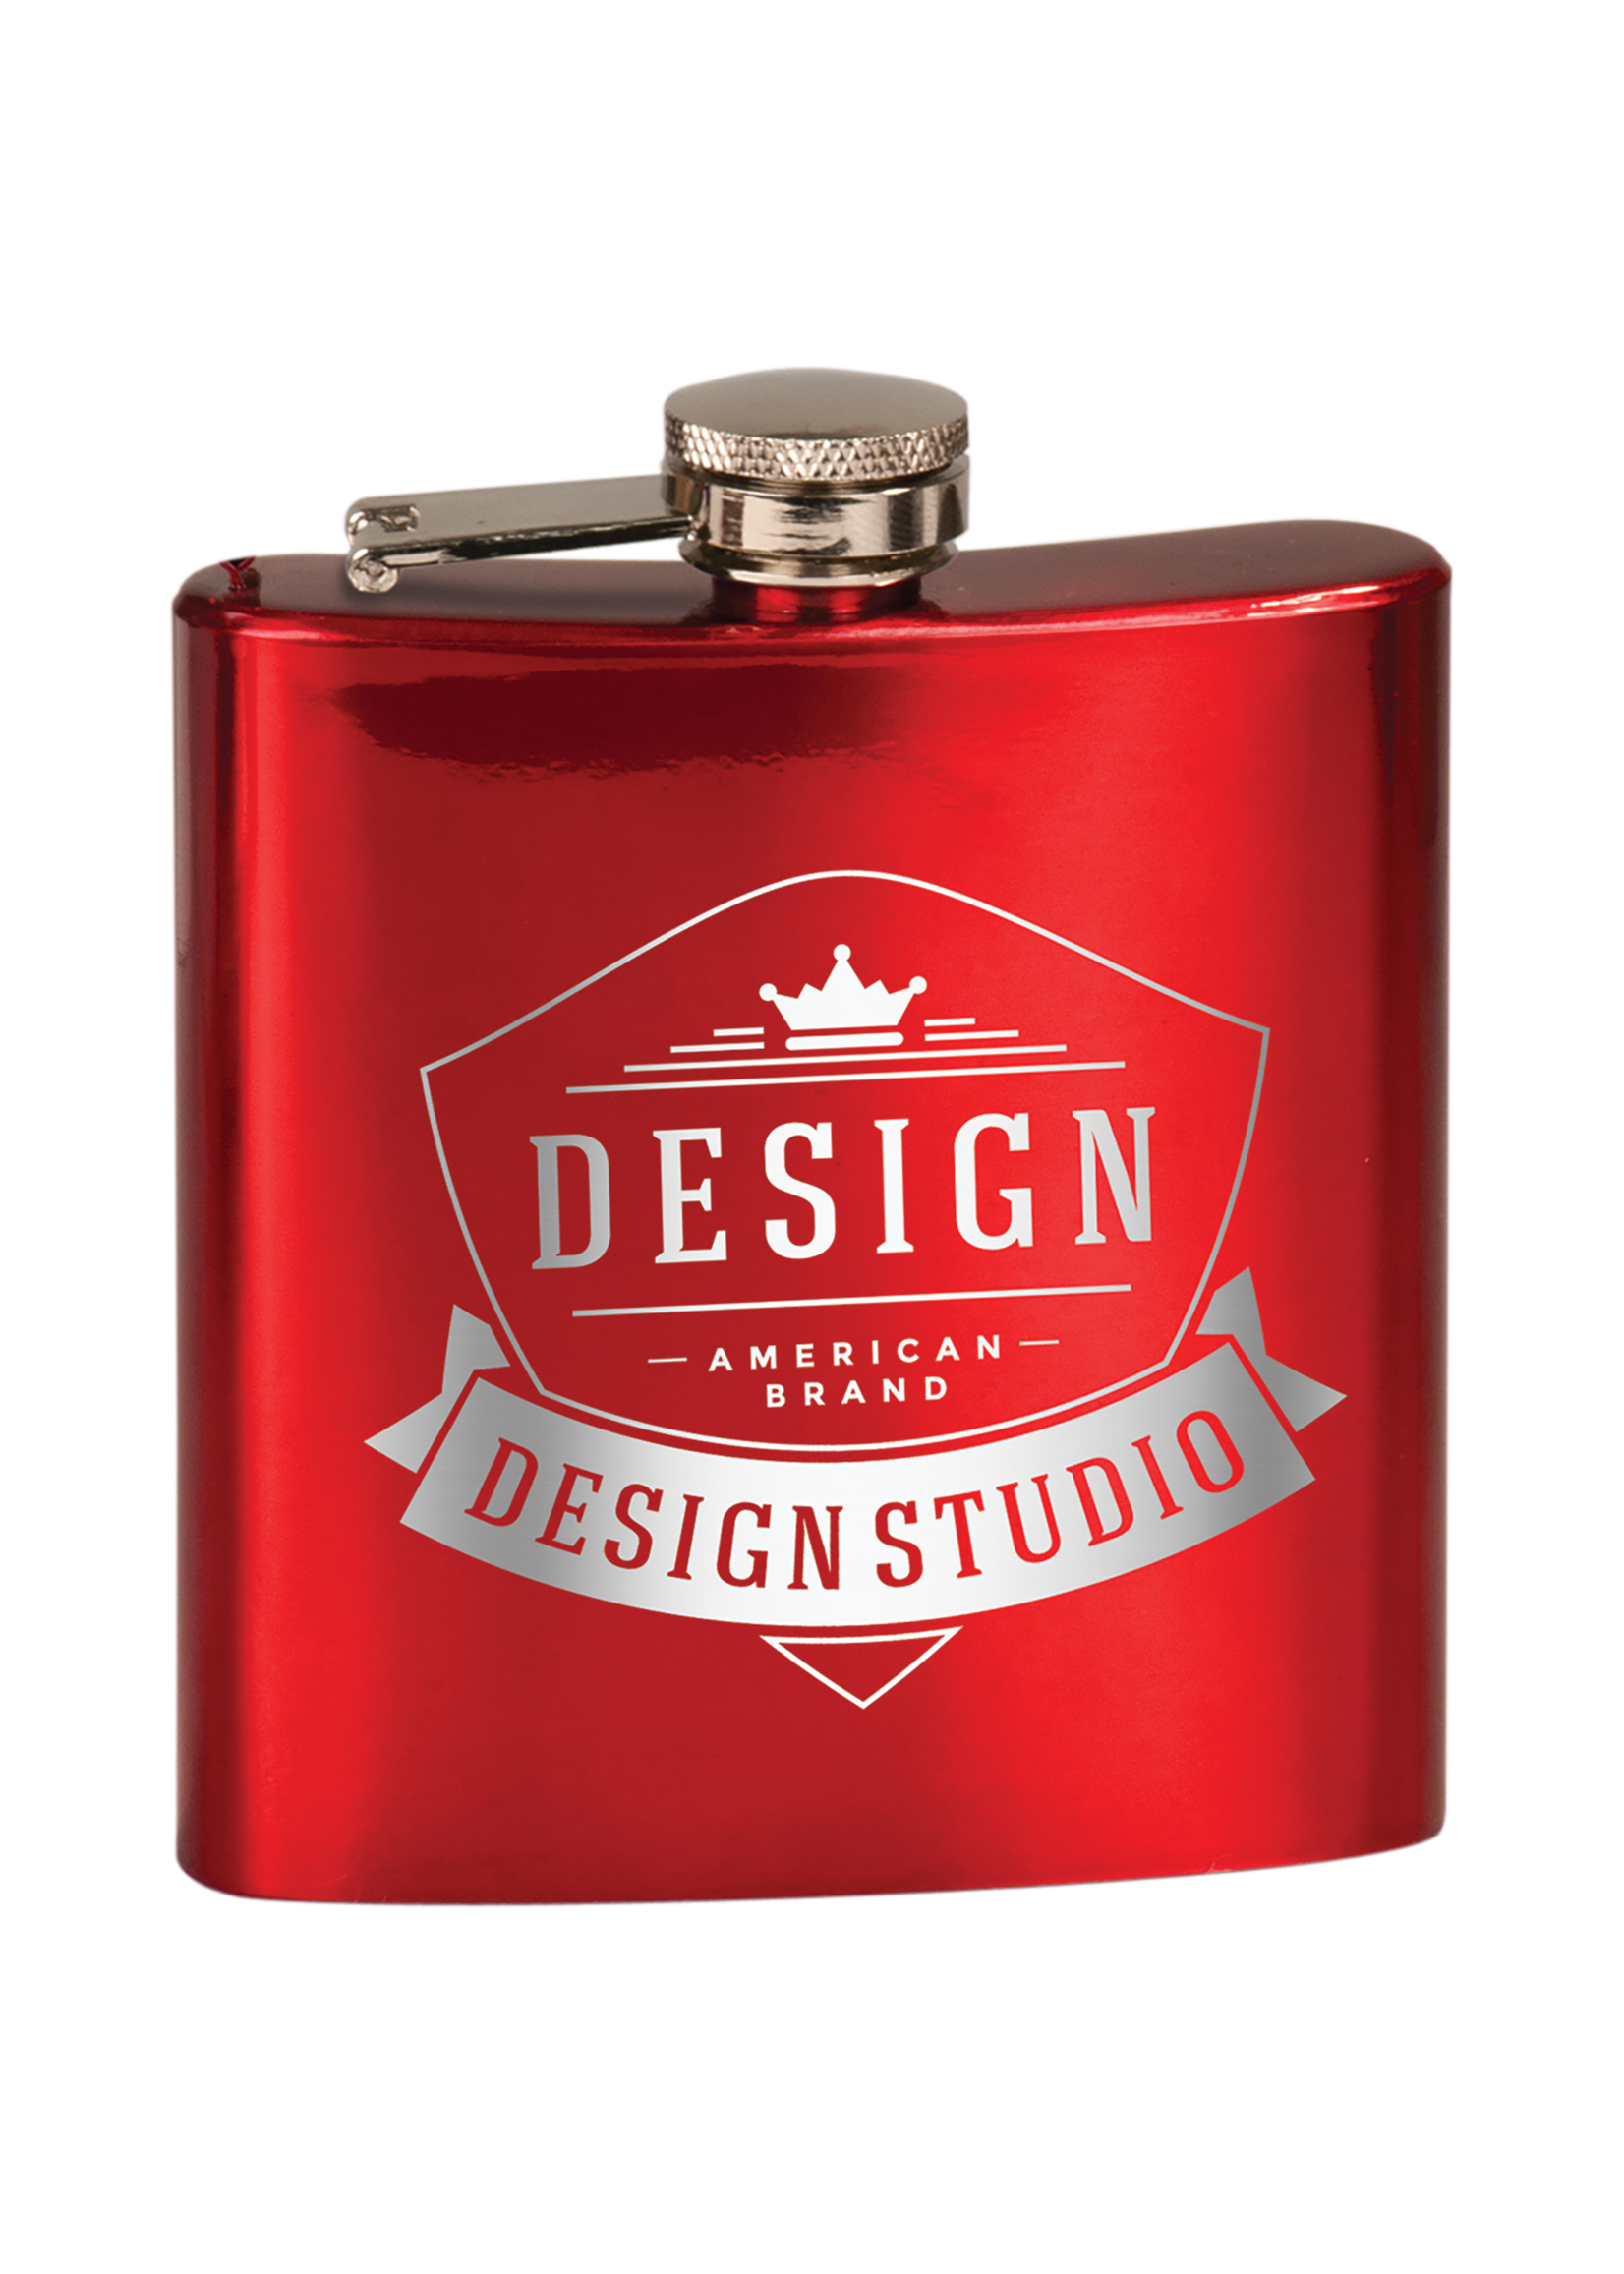 6 oz Stainless Steel Flask. Gloss and Matte Finished